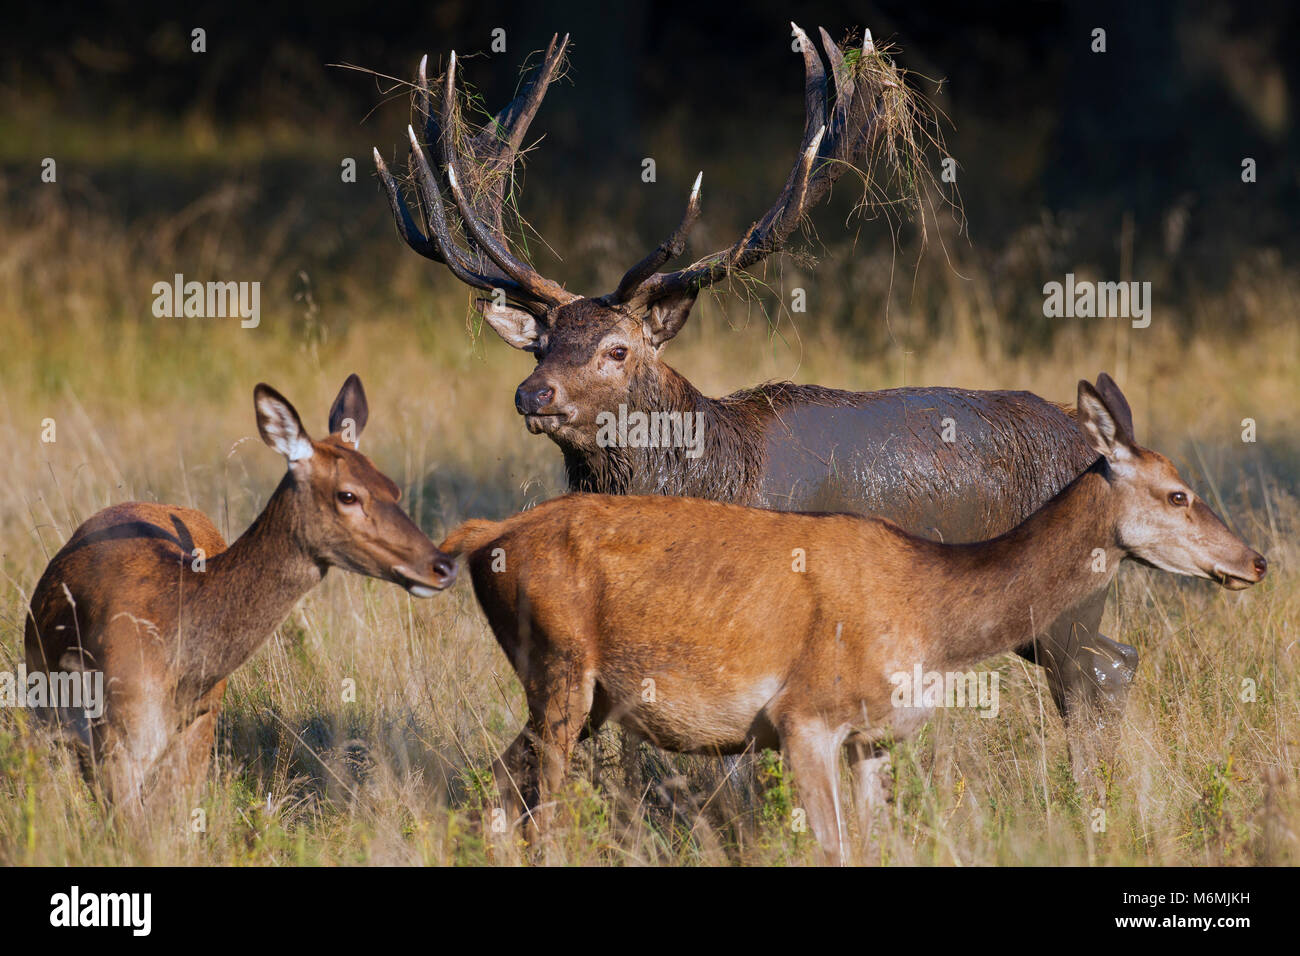 Red deer (Cervus elaphus) hinds and stag with antlers covered in mud and vegetation during the rut in autumn forest - Stock Image